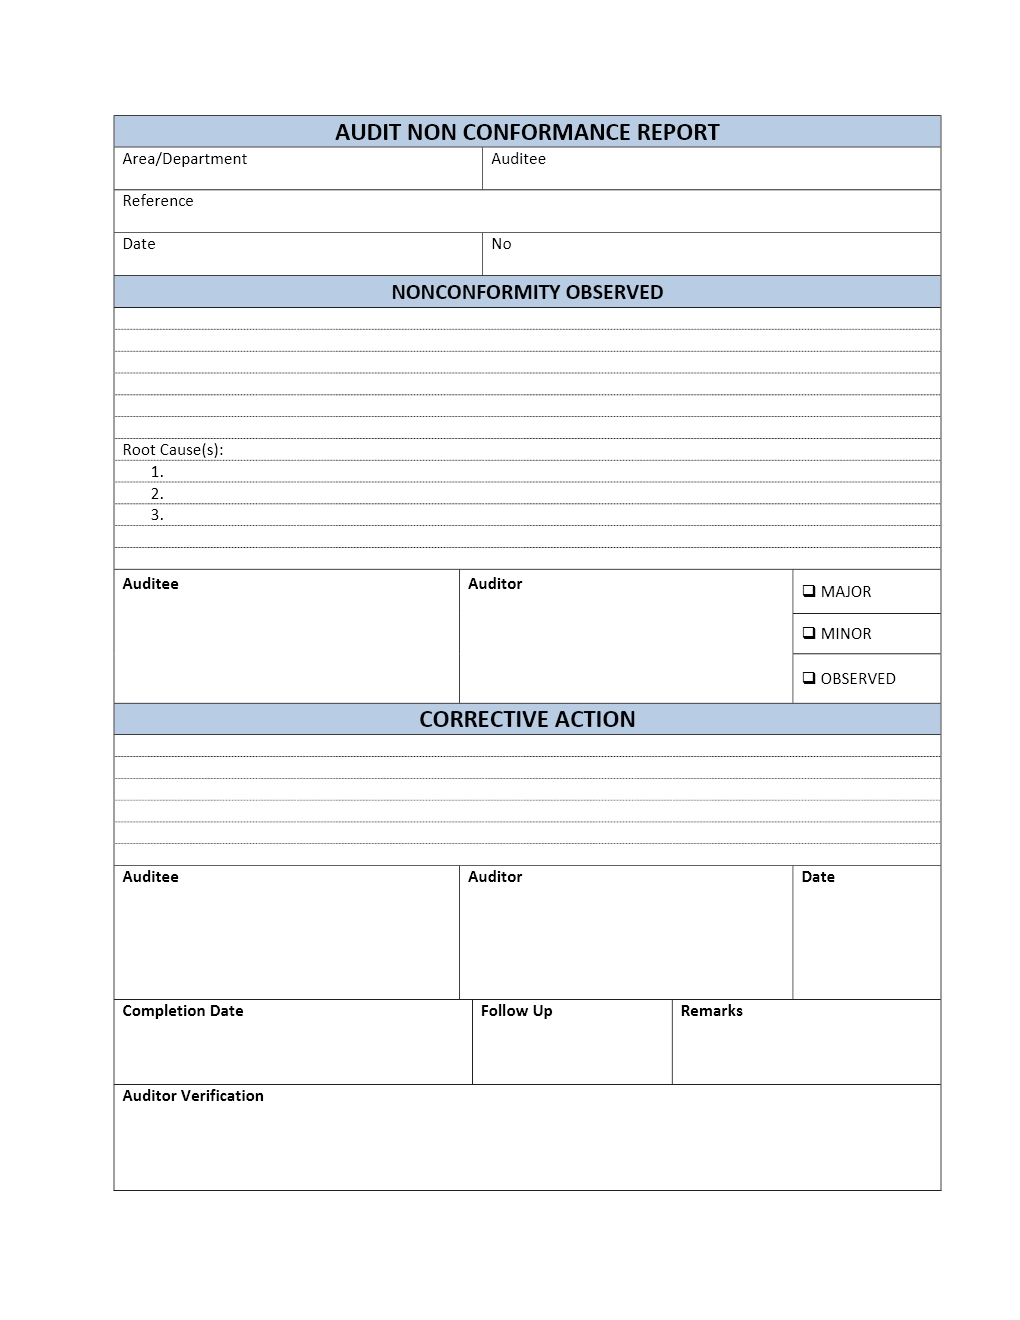 Audit Non Conformance Report Form Template